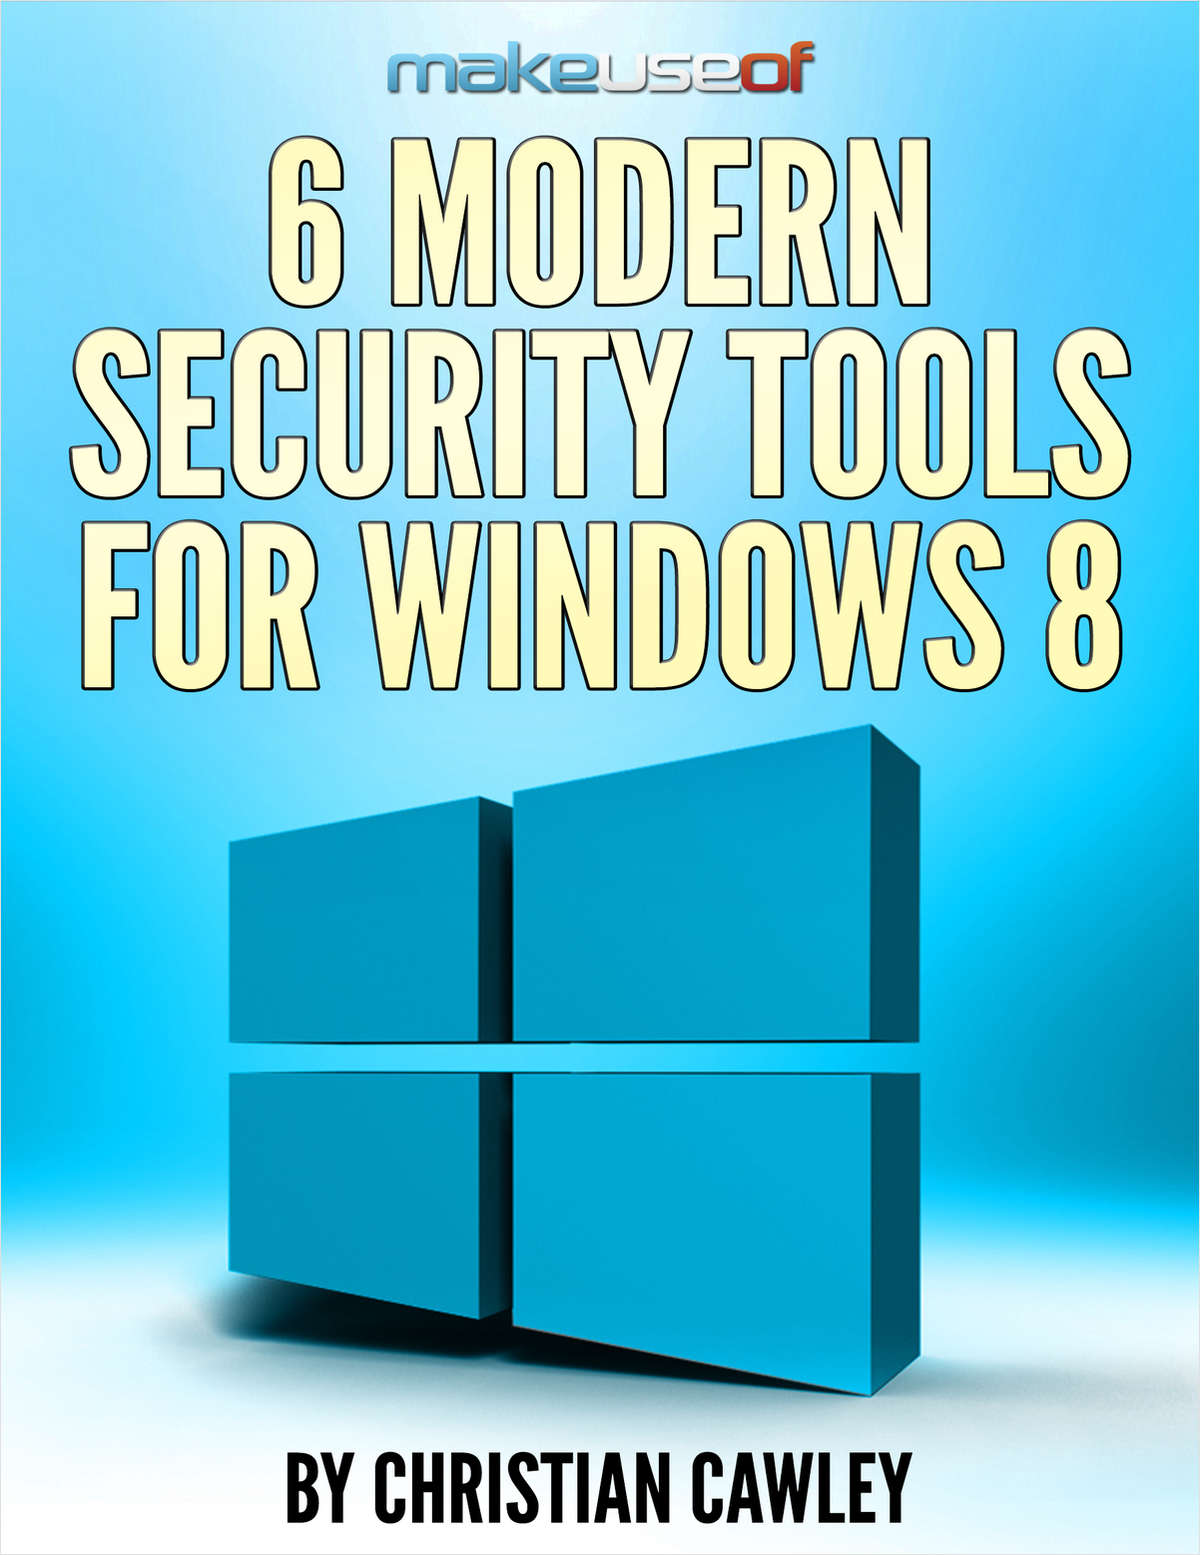 6 Modern Security Tools for Windows 8